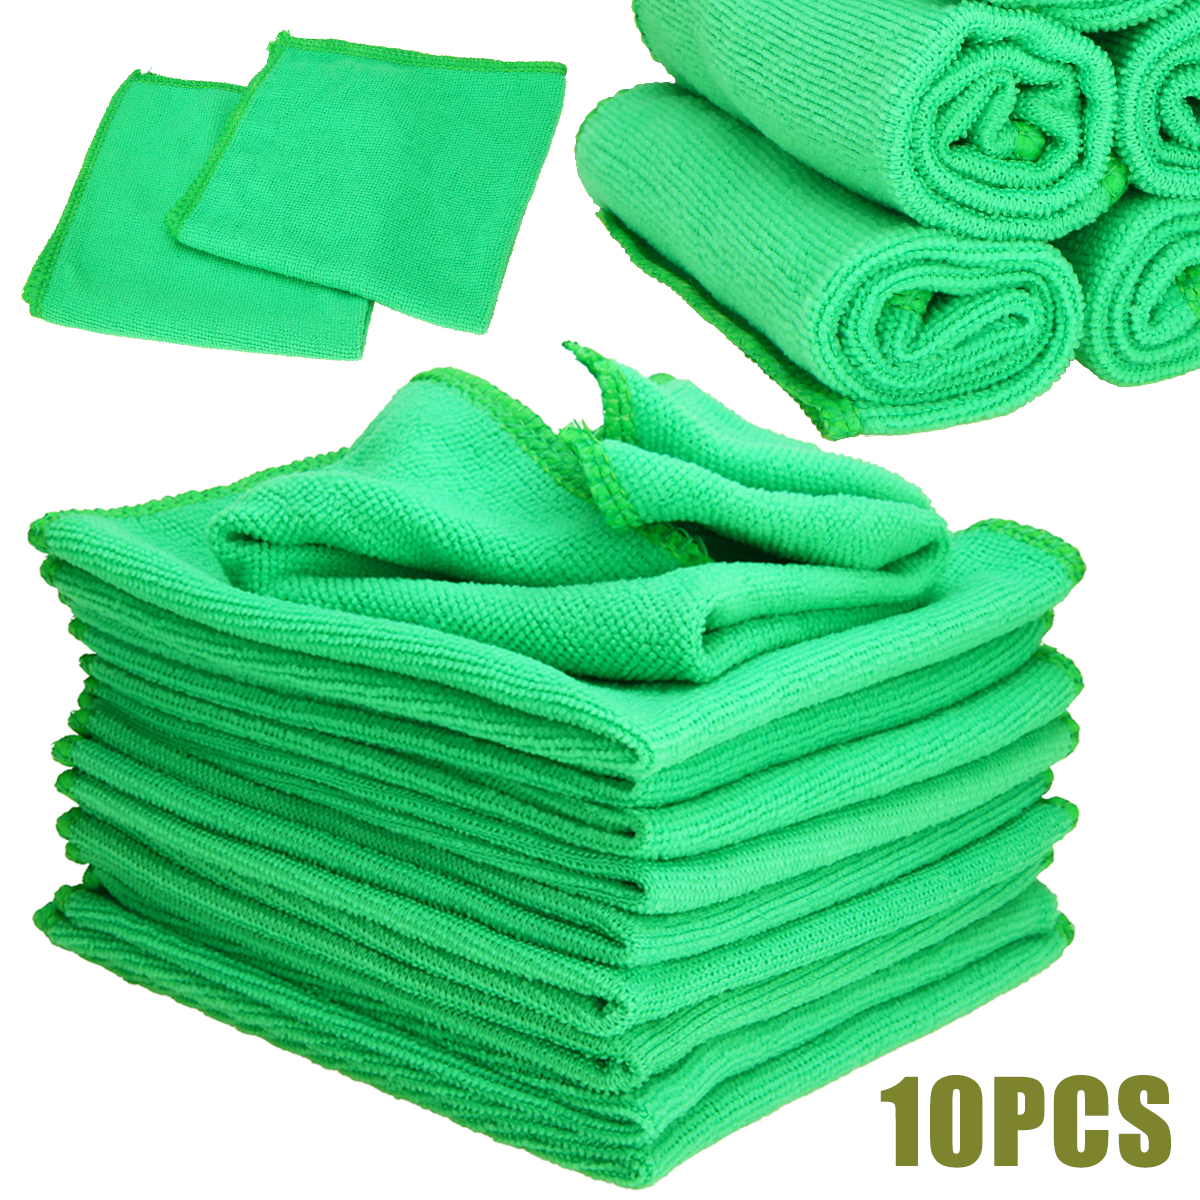 Mayitr 10 Pcs Car Microfiber Clean Towel 25*25CM Soft Absorbent Wash Cleaning Polish Cloth